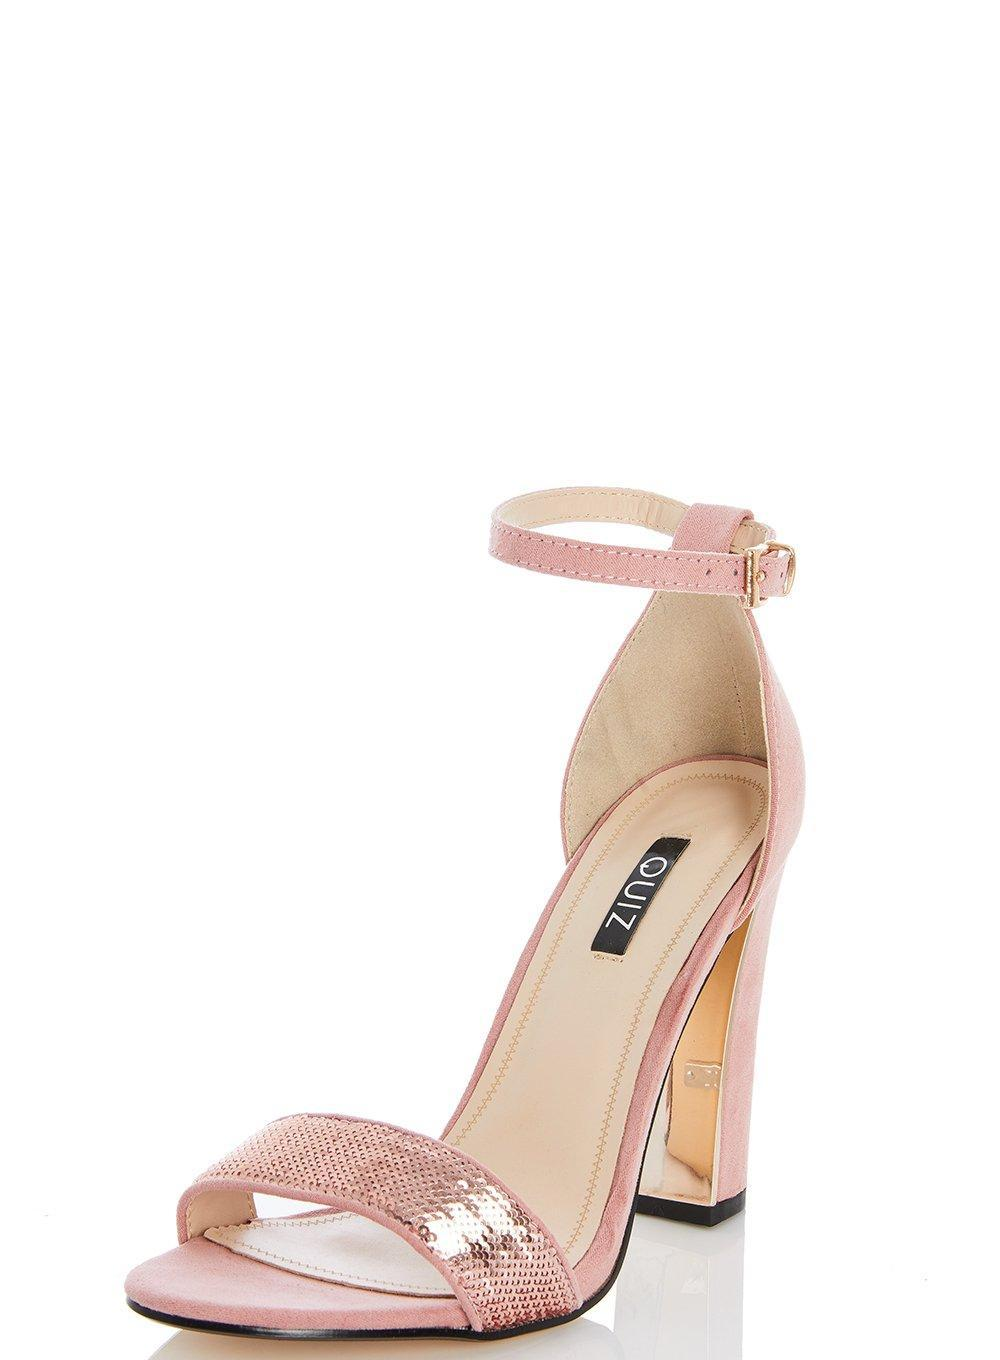 Lyst - Dorothy Perkins Quiz Pink Sequin Block Heel Sandals in Pink dae9a1879f52